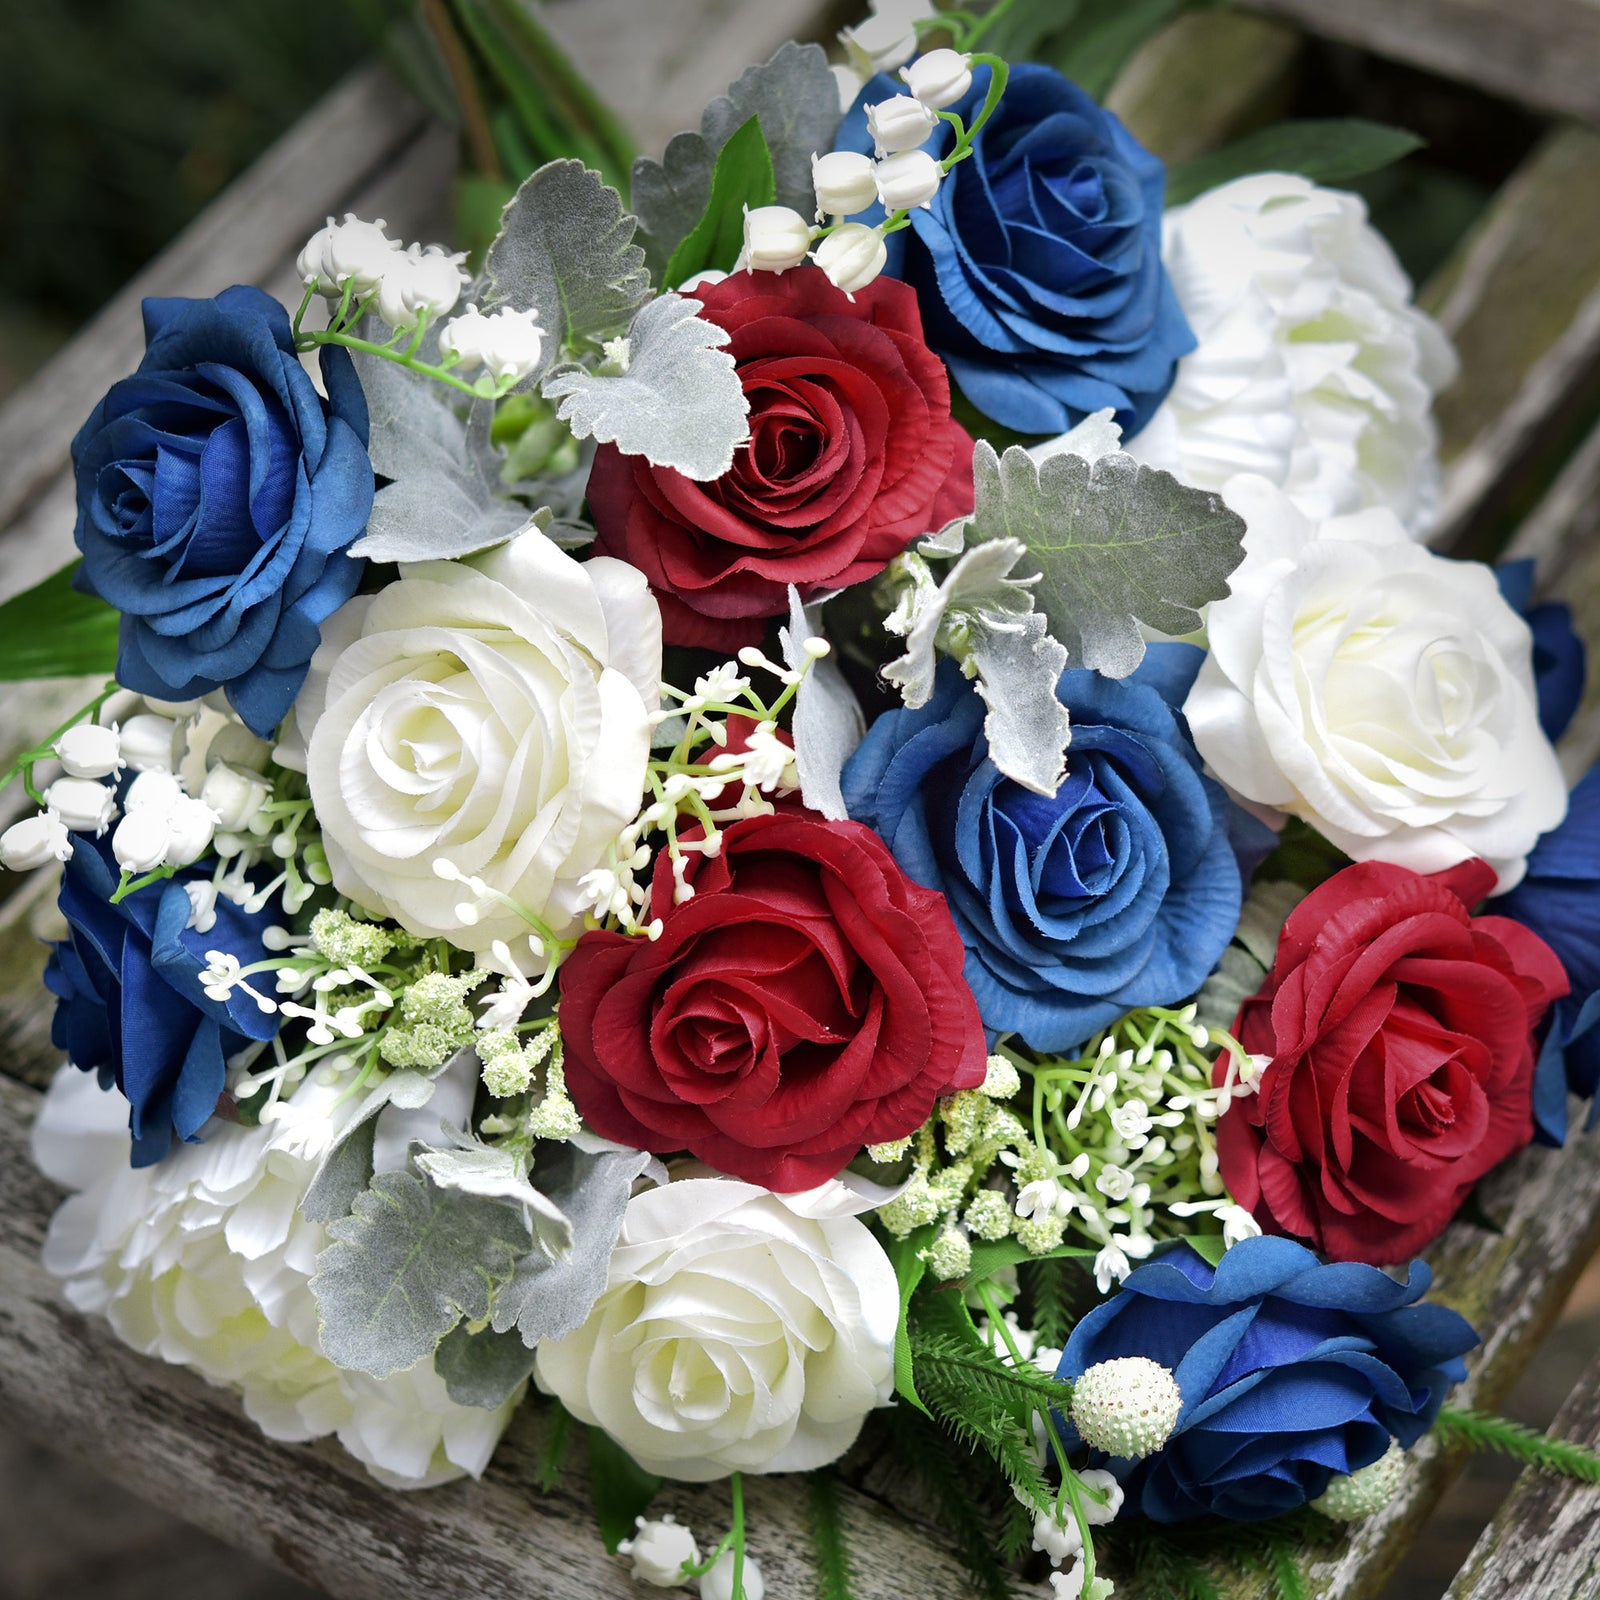 Real Touch 10 Stems Royal Blue Silk Artificial Roses Flowers 'Petals Feel and Look like Fresh Roses'